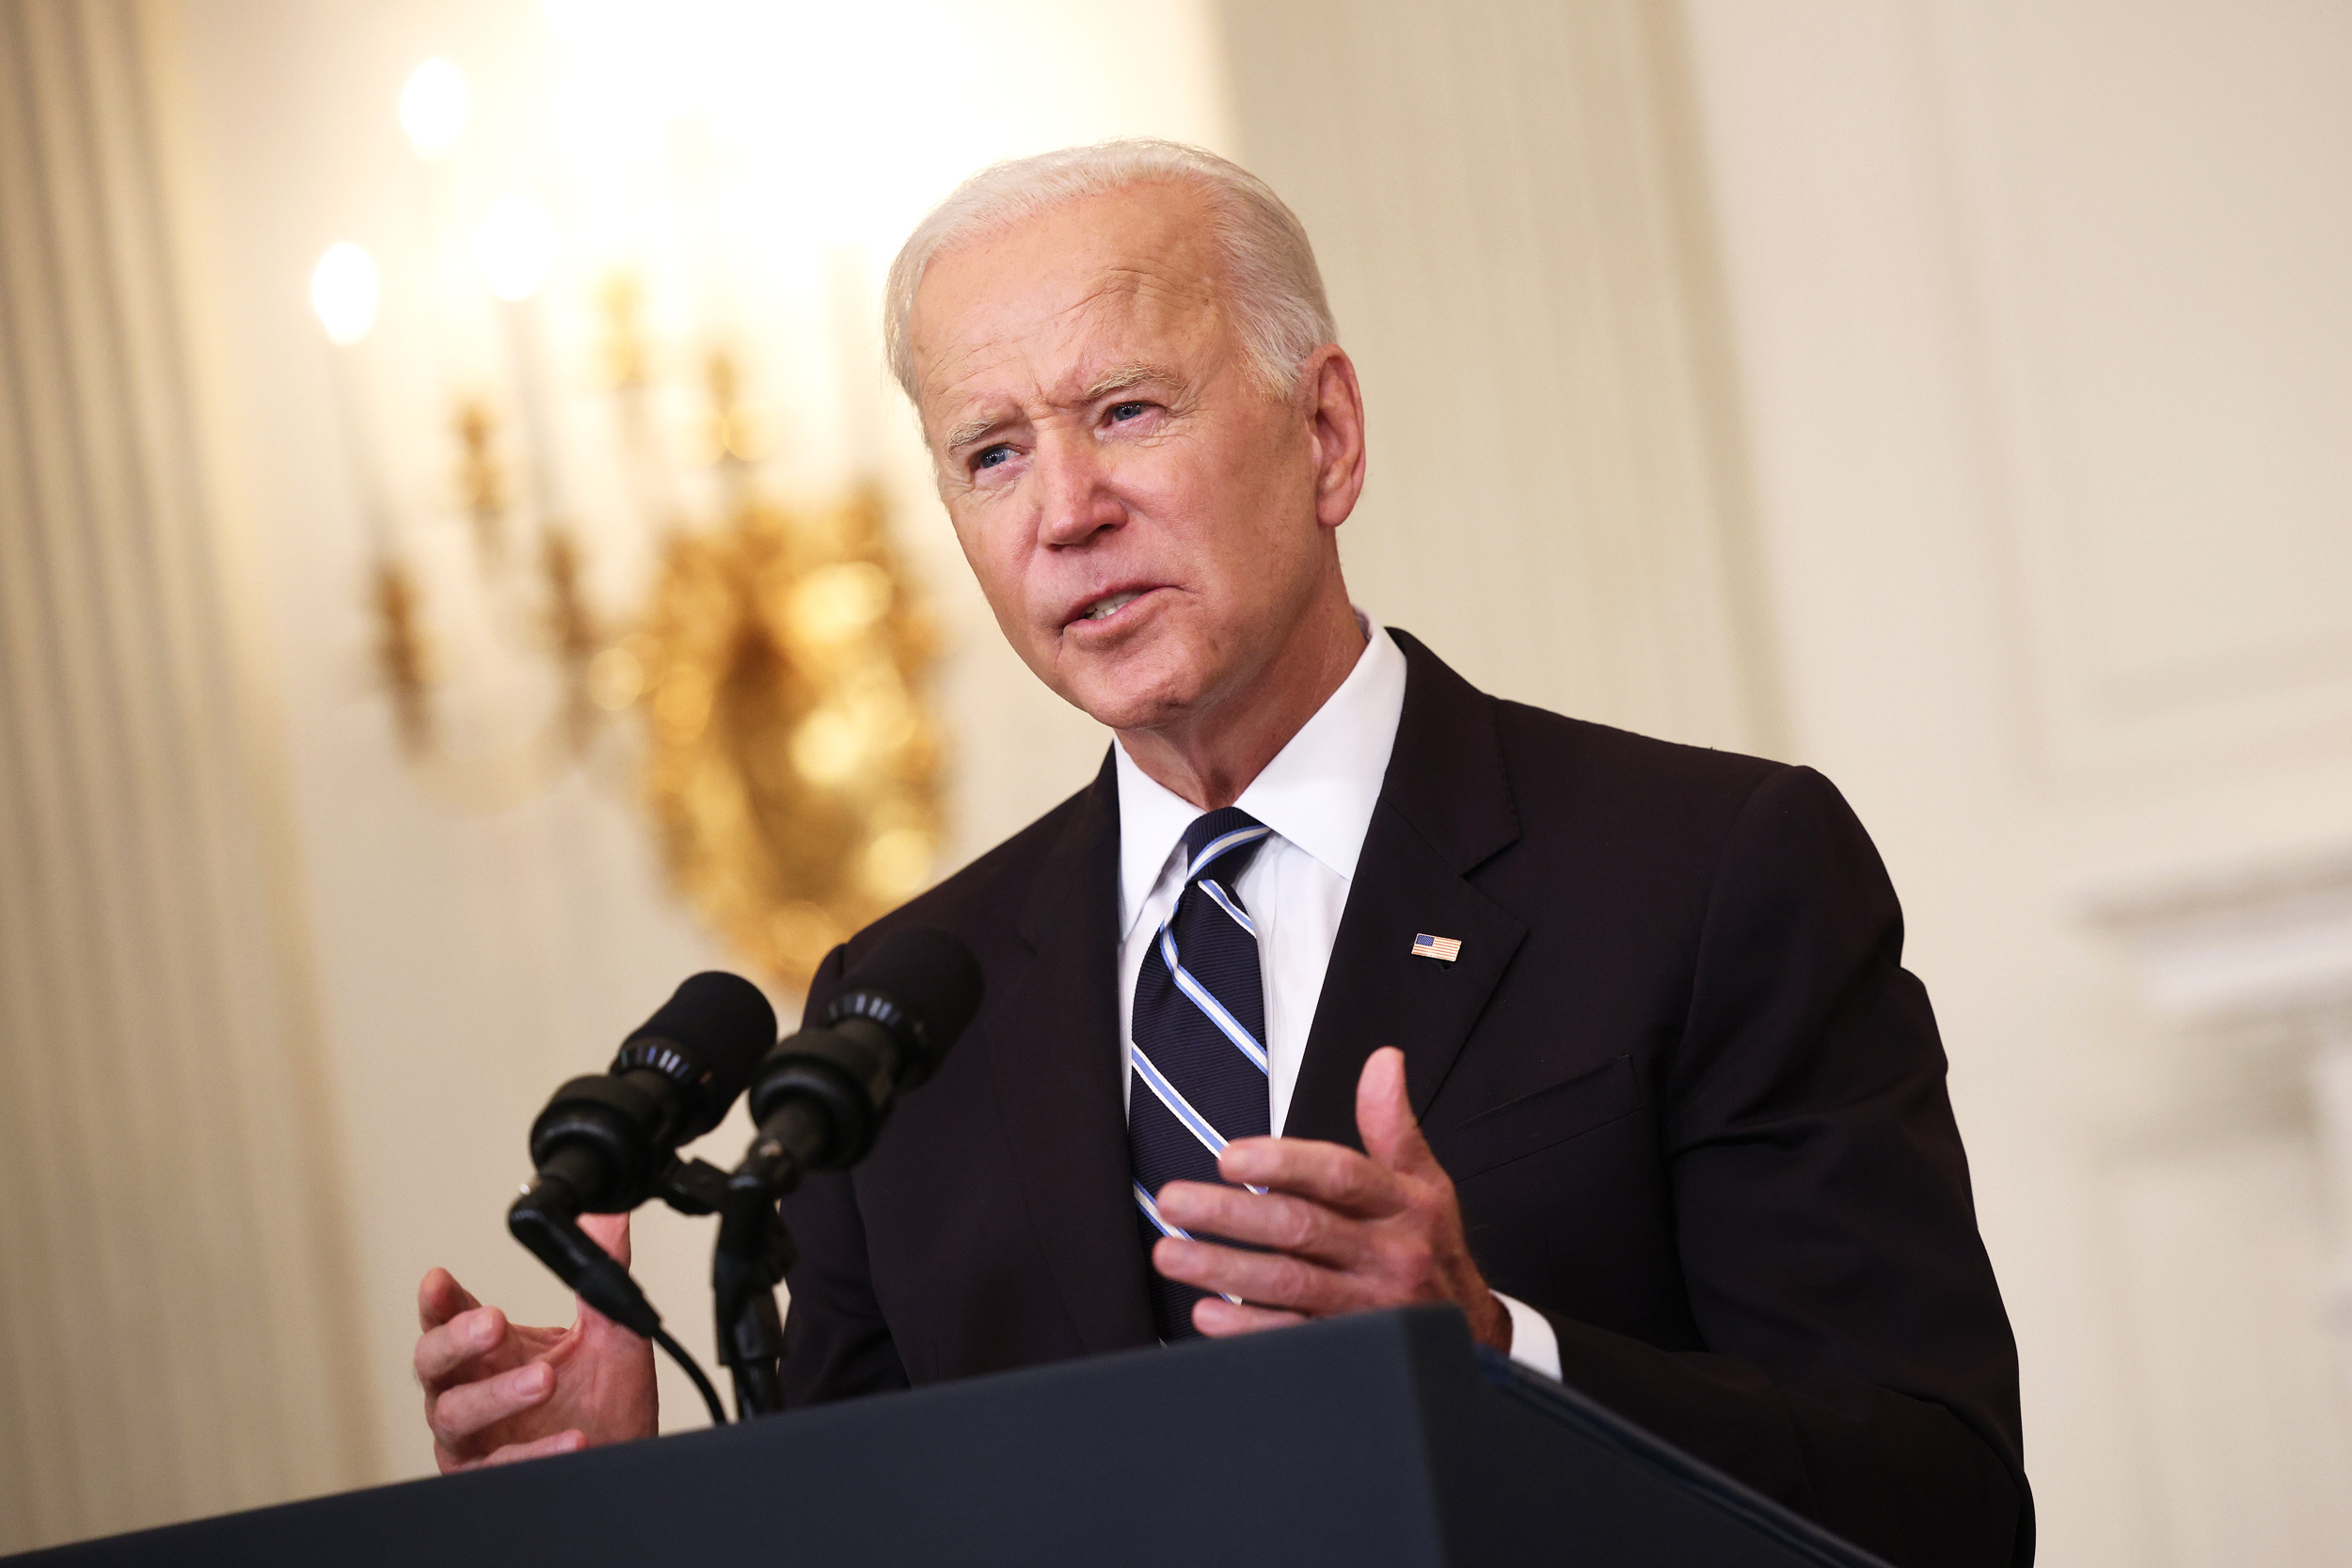 Biden recognizes the 10th anniversary of 'don't ask, don't tell' repeal